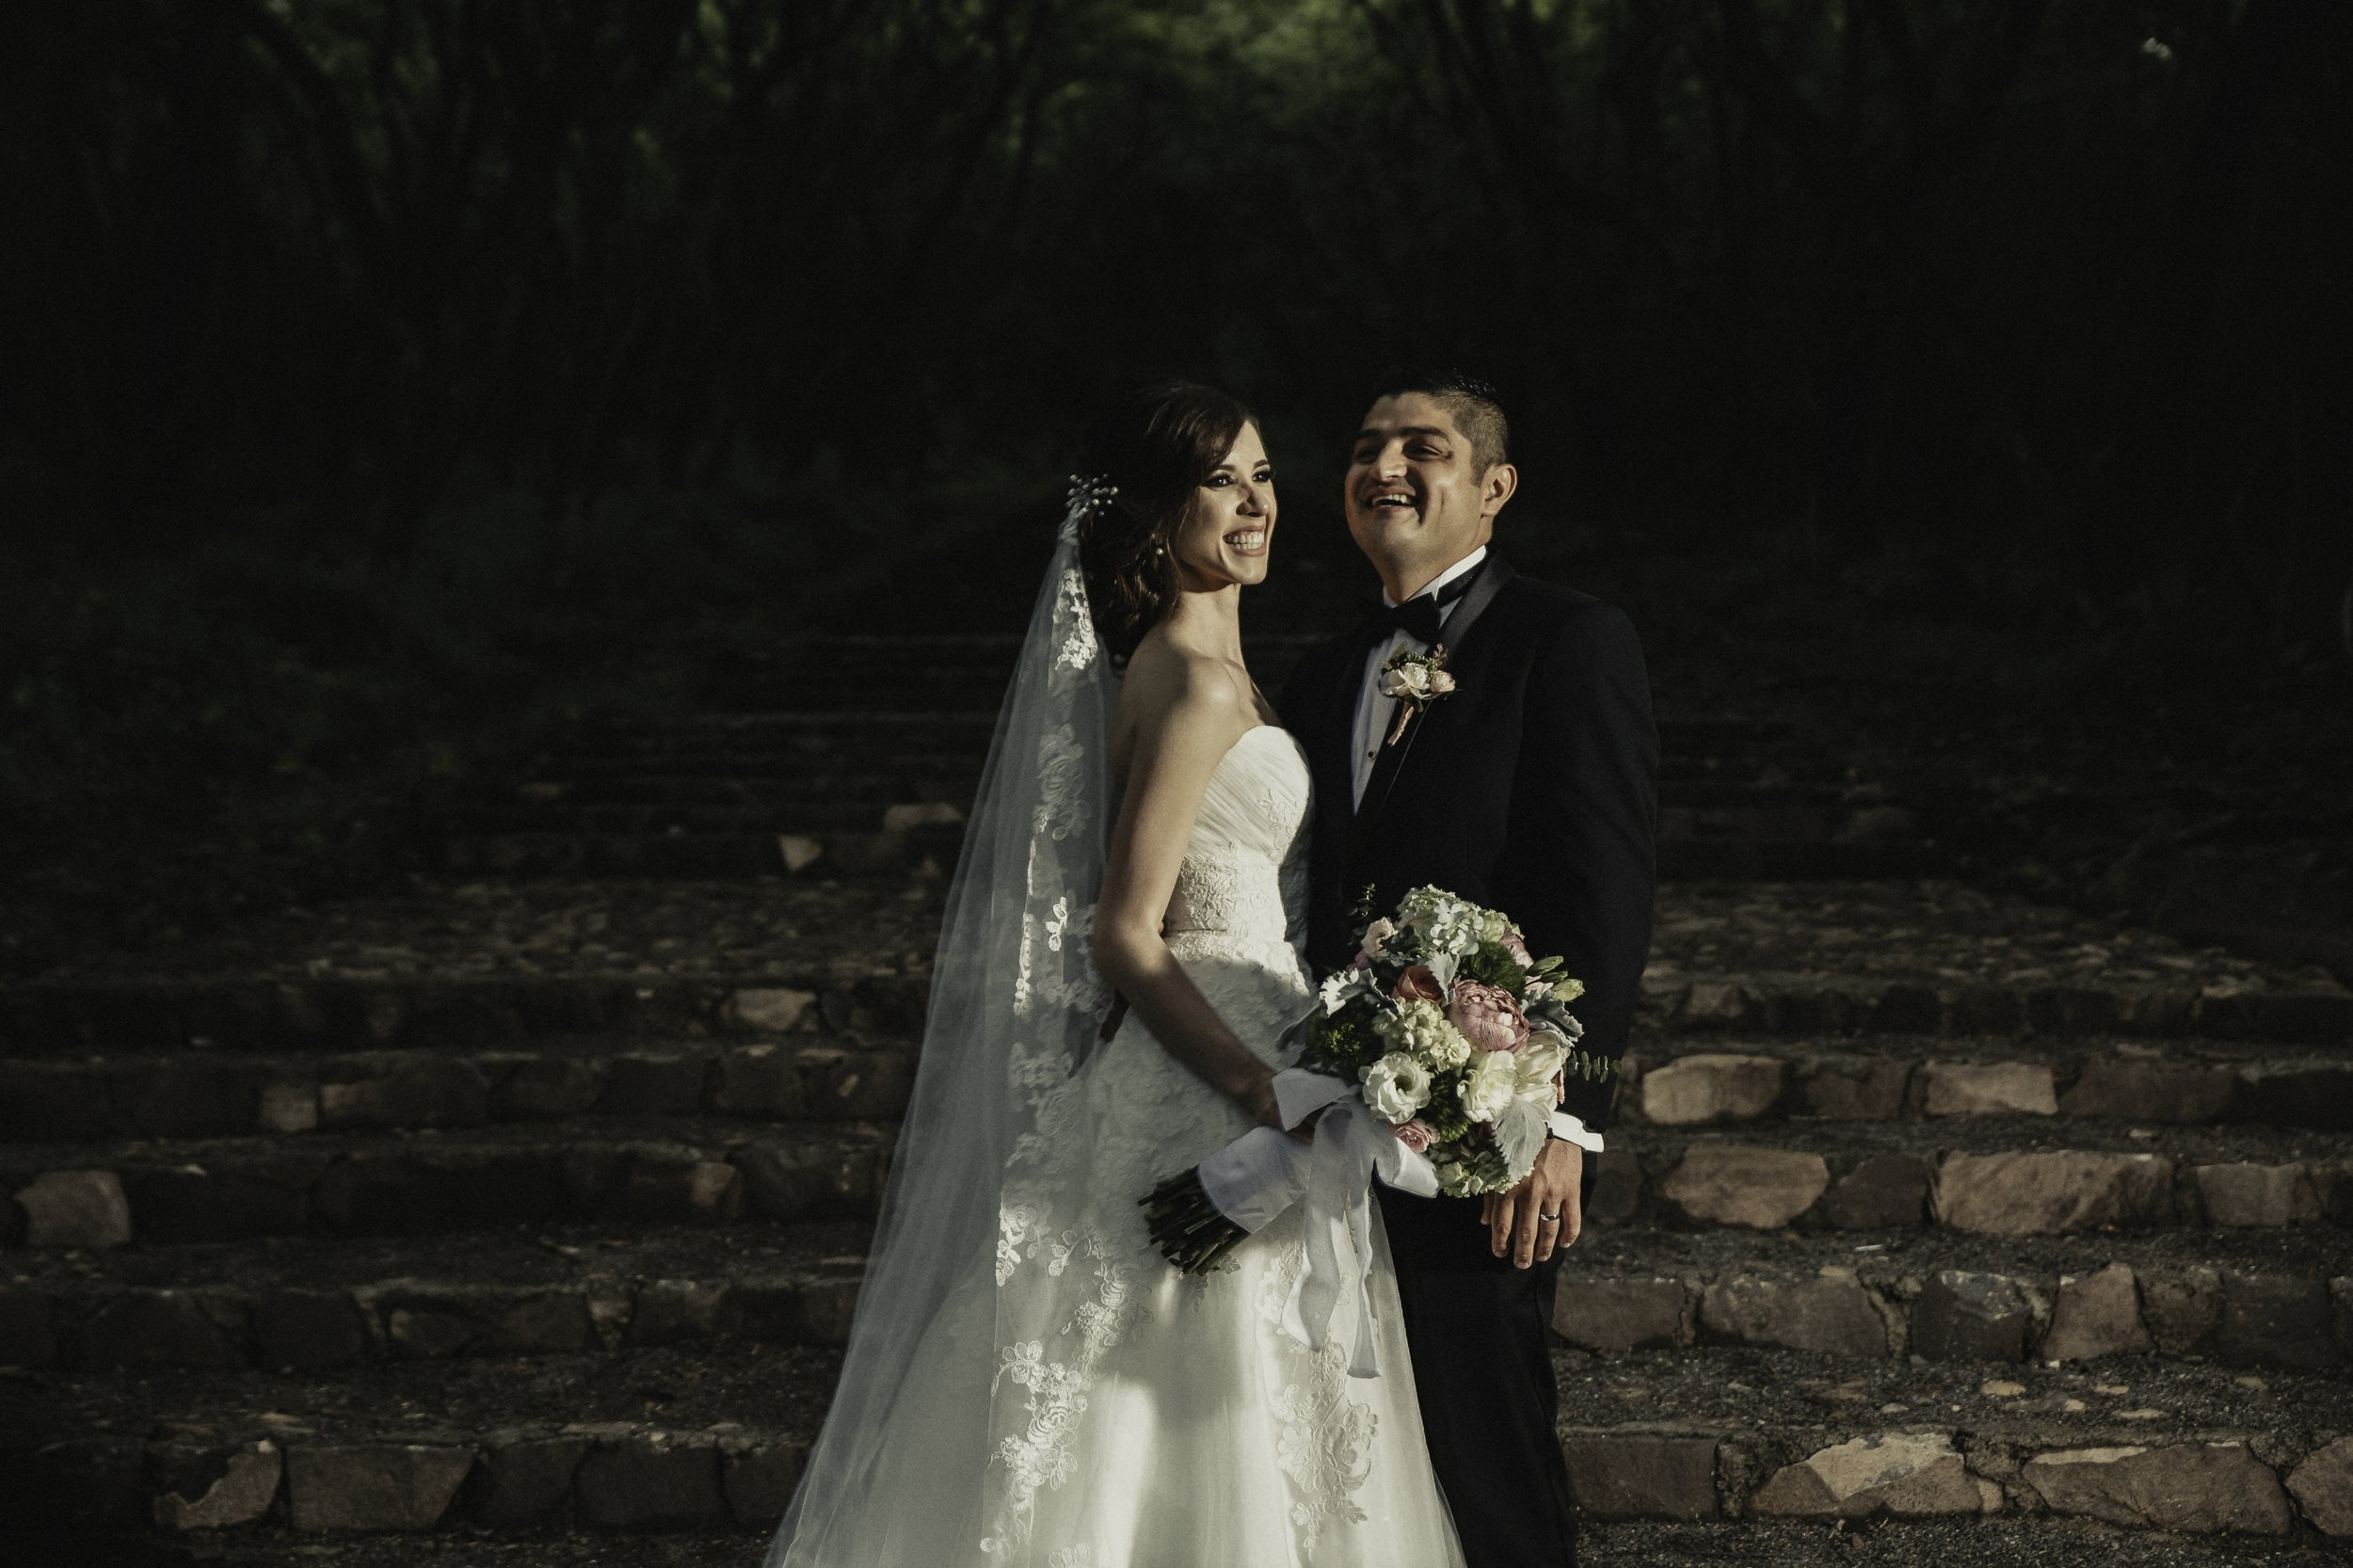 ODEMARIS_DANIEL-99carotida_photographer_boda_wedding.jpg